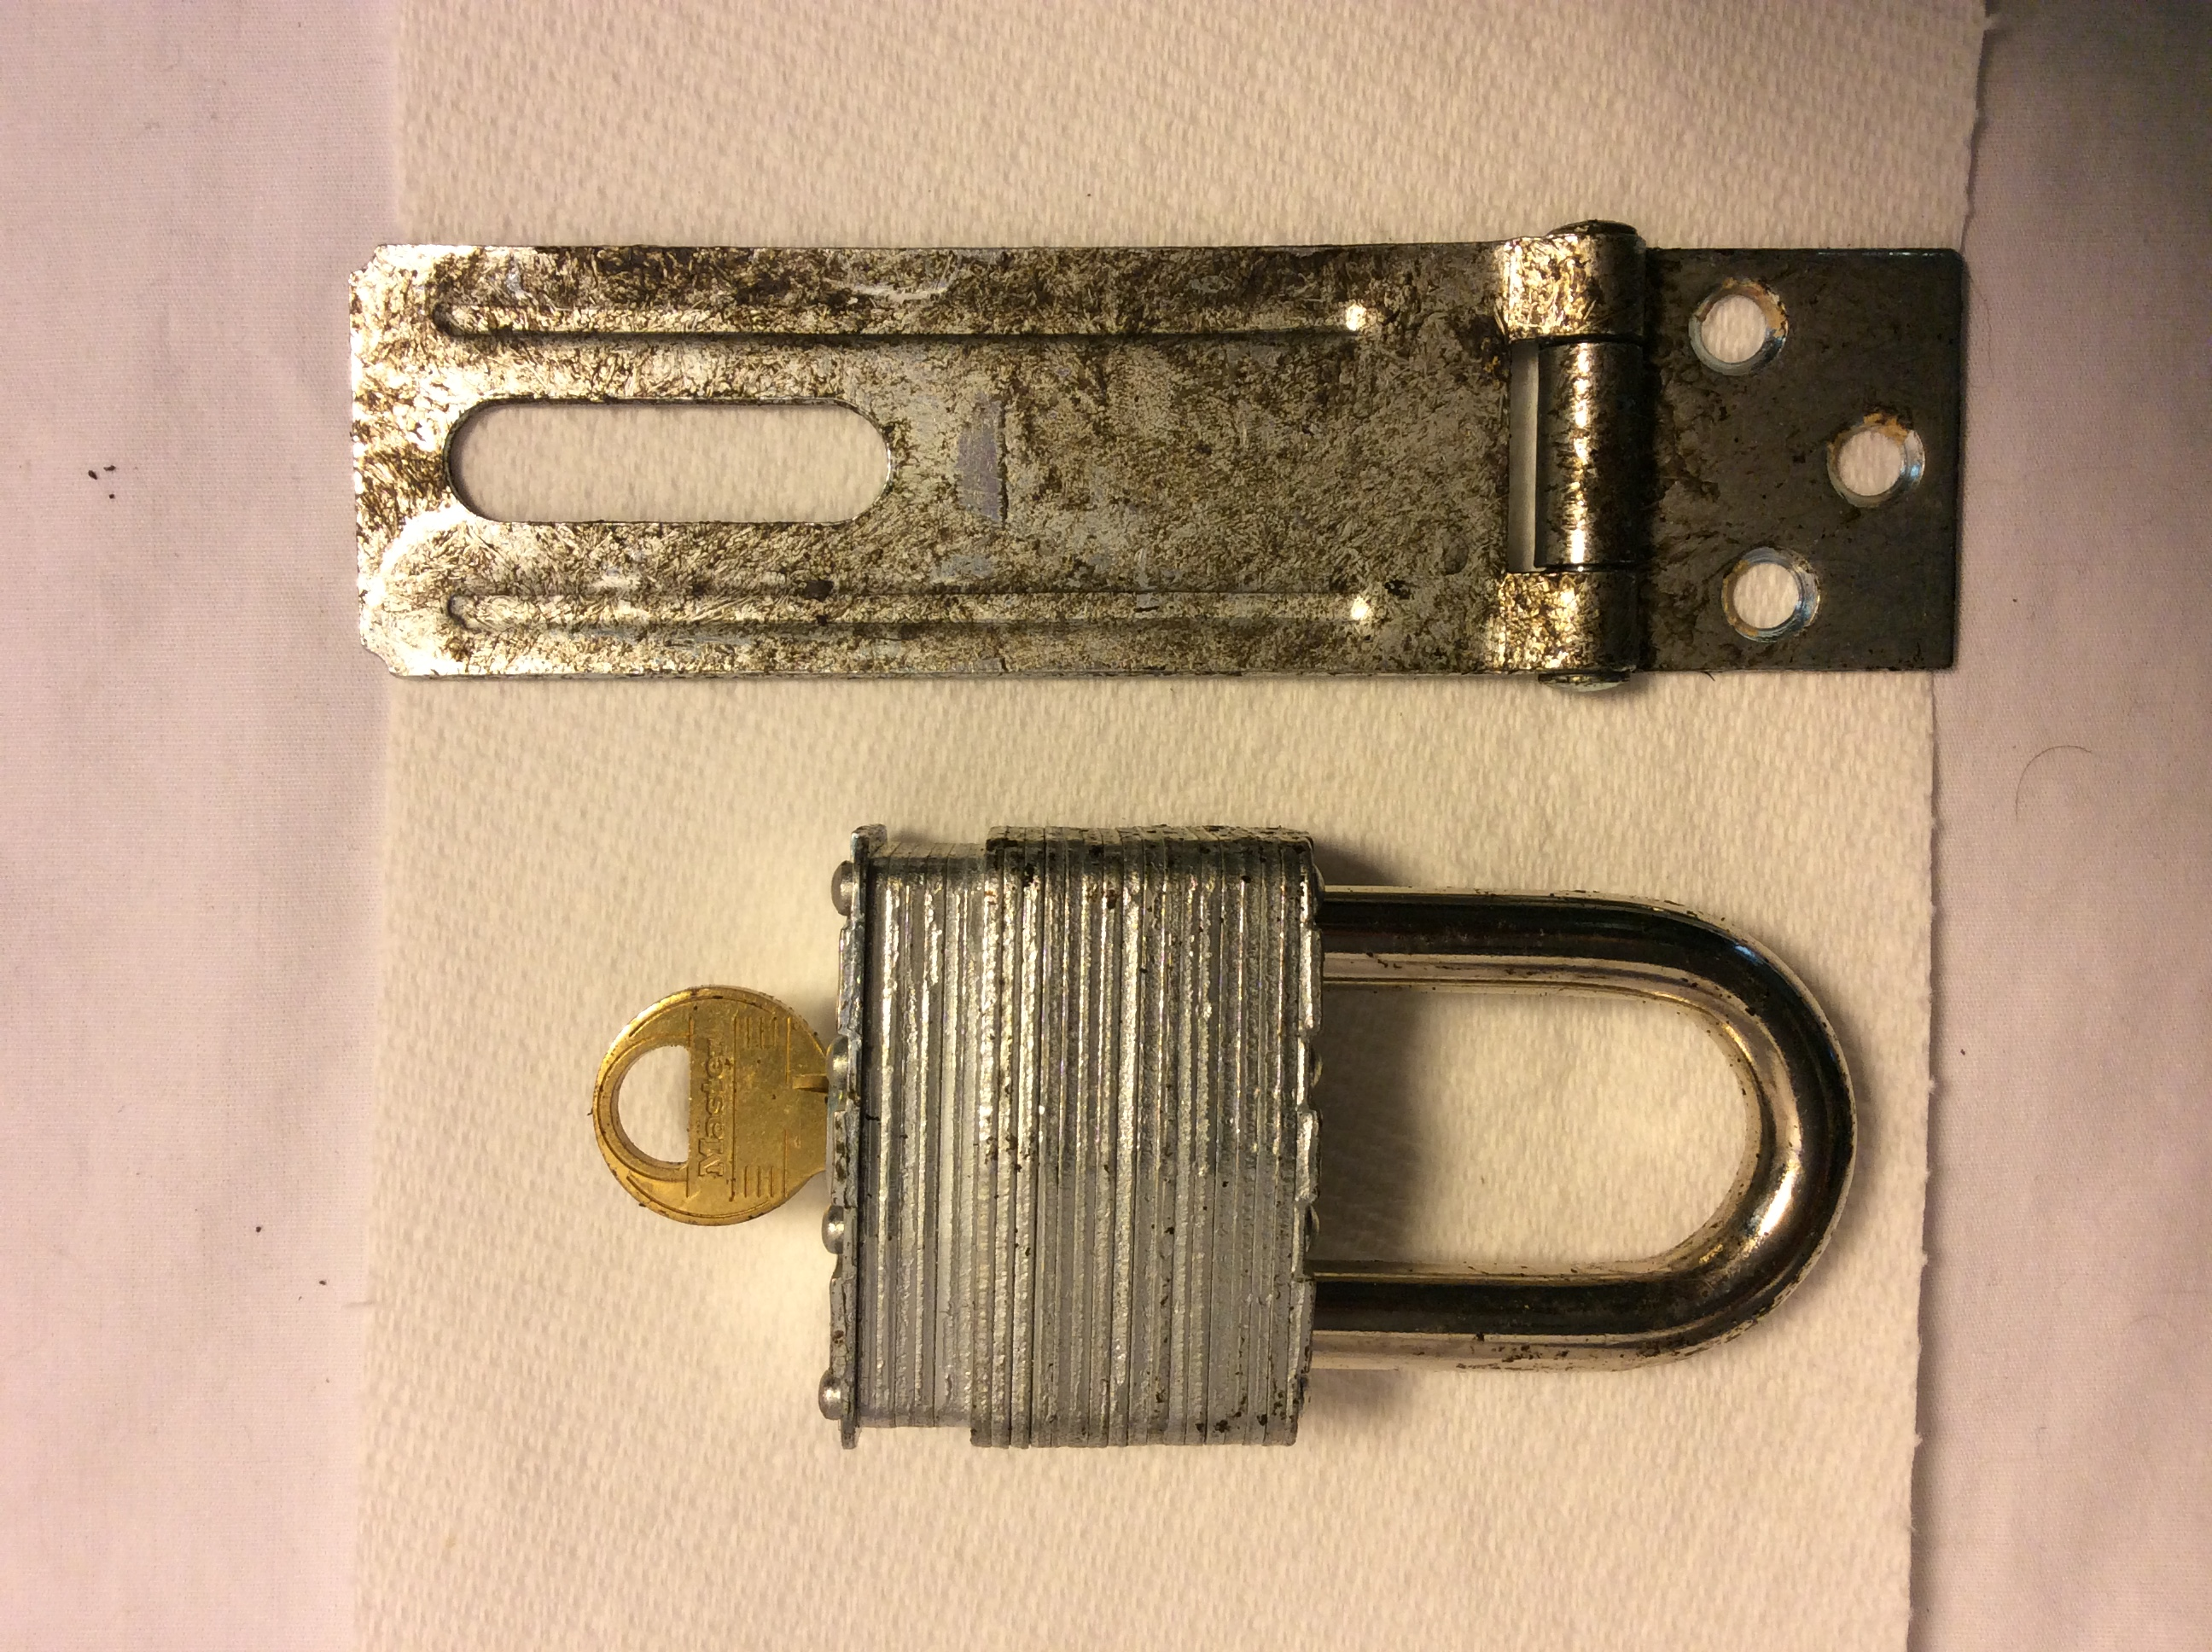 aged silver padlock with extra latches